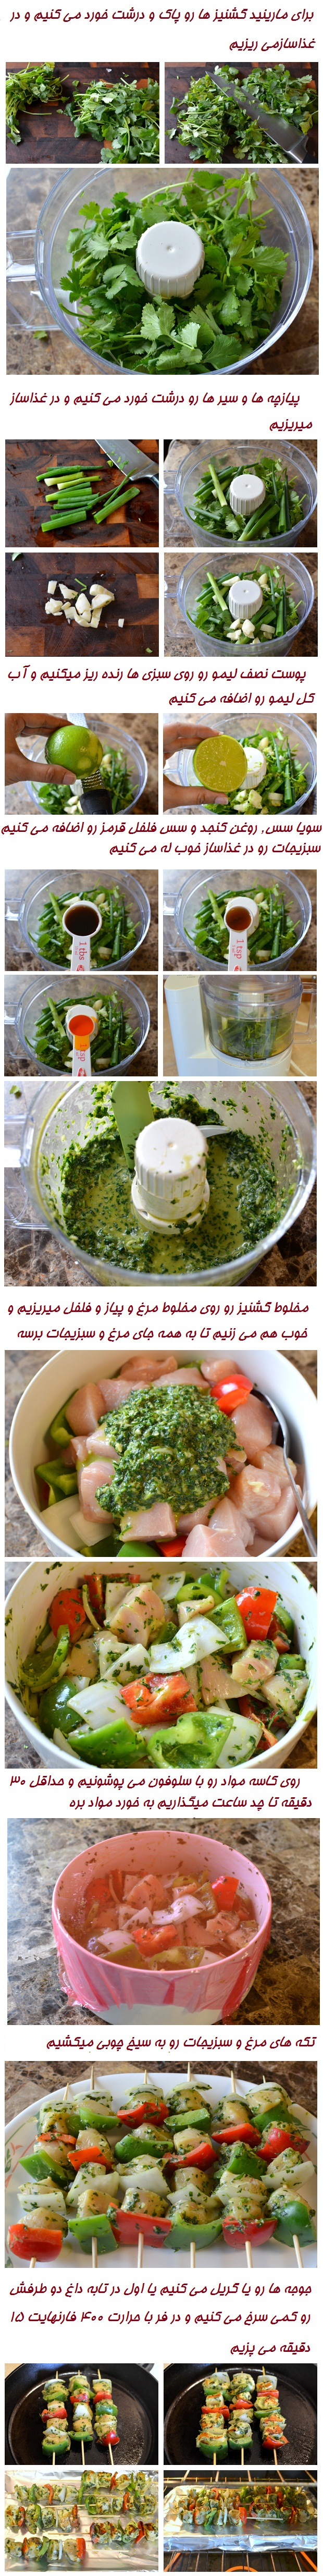 http://s5.picofile.com/file/8154171018/Cilantro_Lime_Chicken_Skewers_Recipe_Part_2.jpg